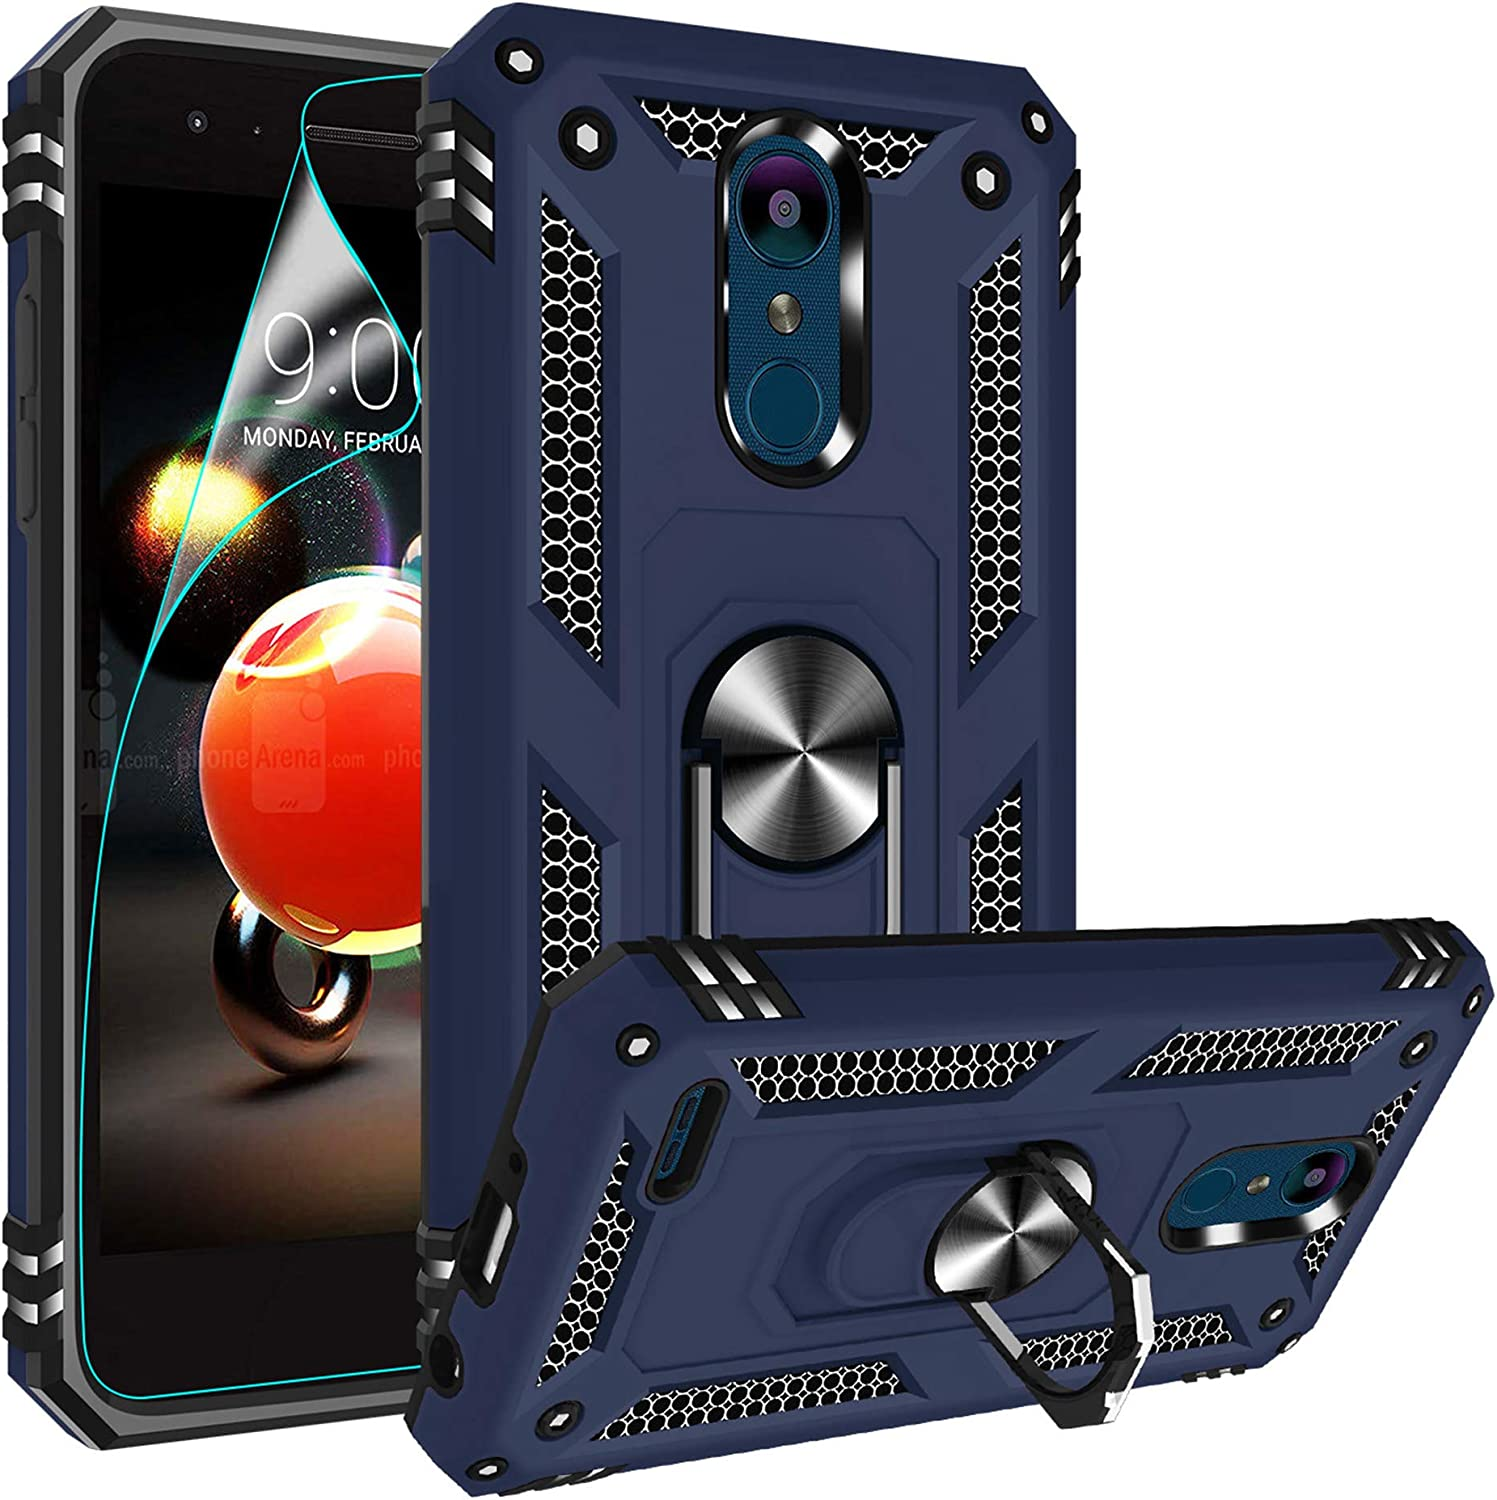 Compatible for LG Tribute Empire Case, LG Aristo 3/Aristo 2/Rebel 4 LTE/Aristo 2 Plus/Phoenix 4/Tribute Dynasty/Zone 4 Case, Gritup Metal Ring Kicktand Cover Phone Case for LG K8 2018 Blue